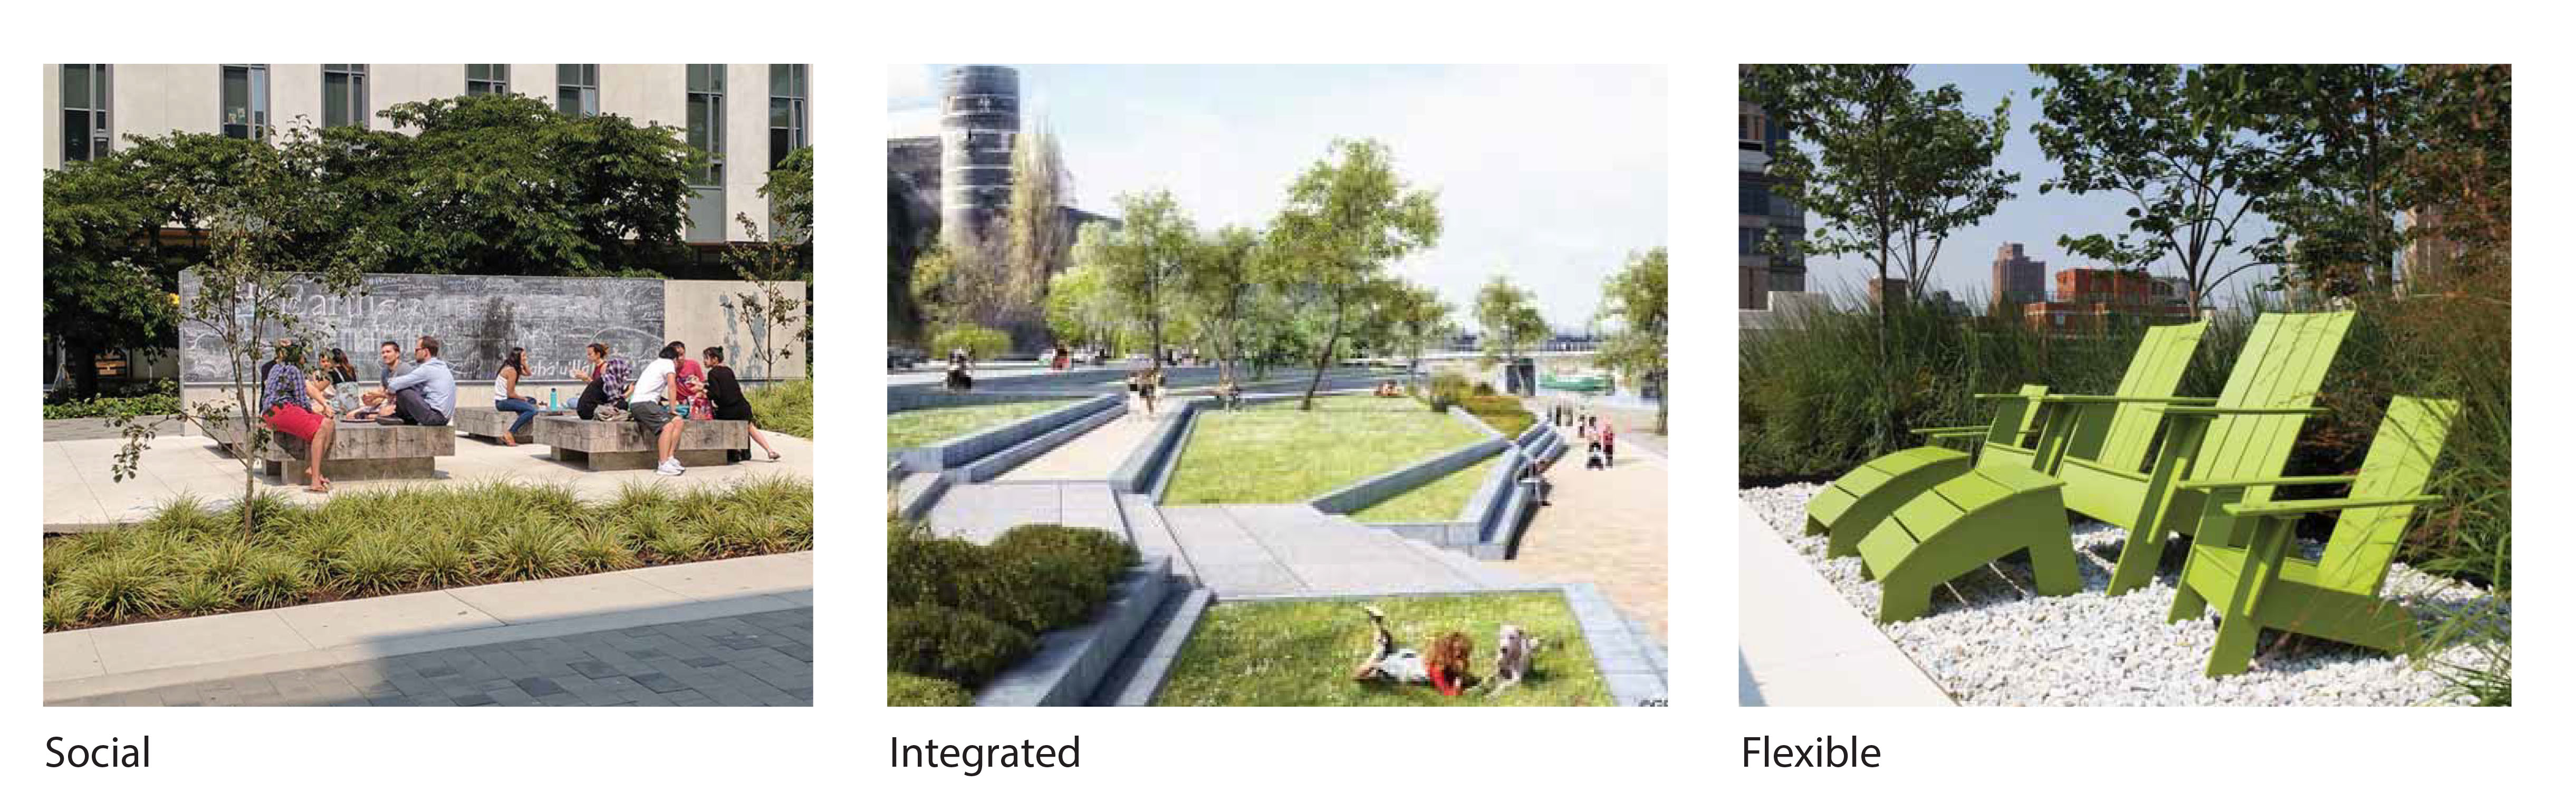 What type of seating would you like to see in the greenspace?